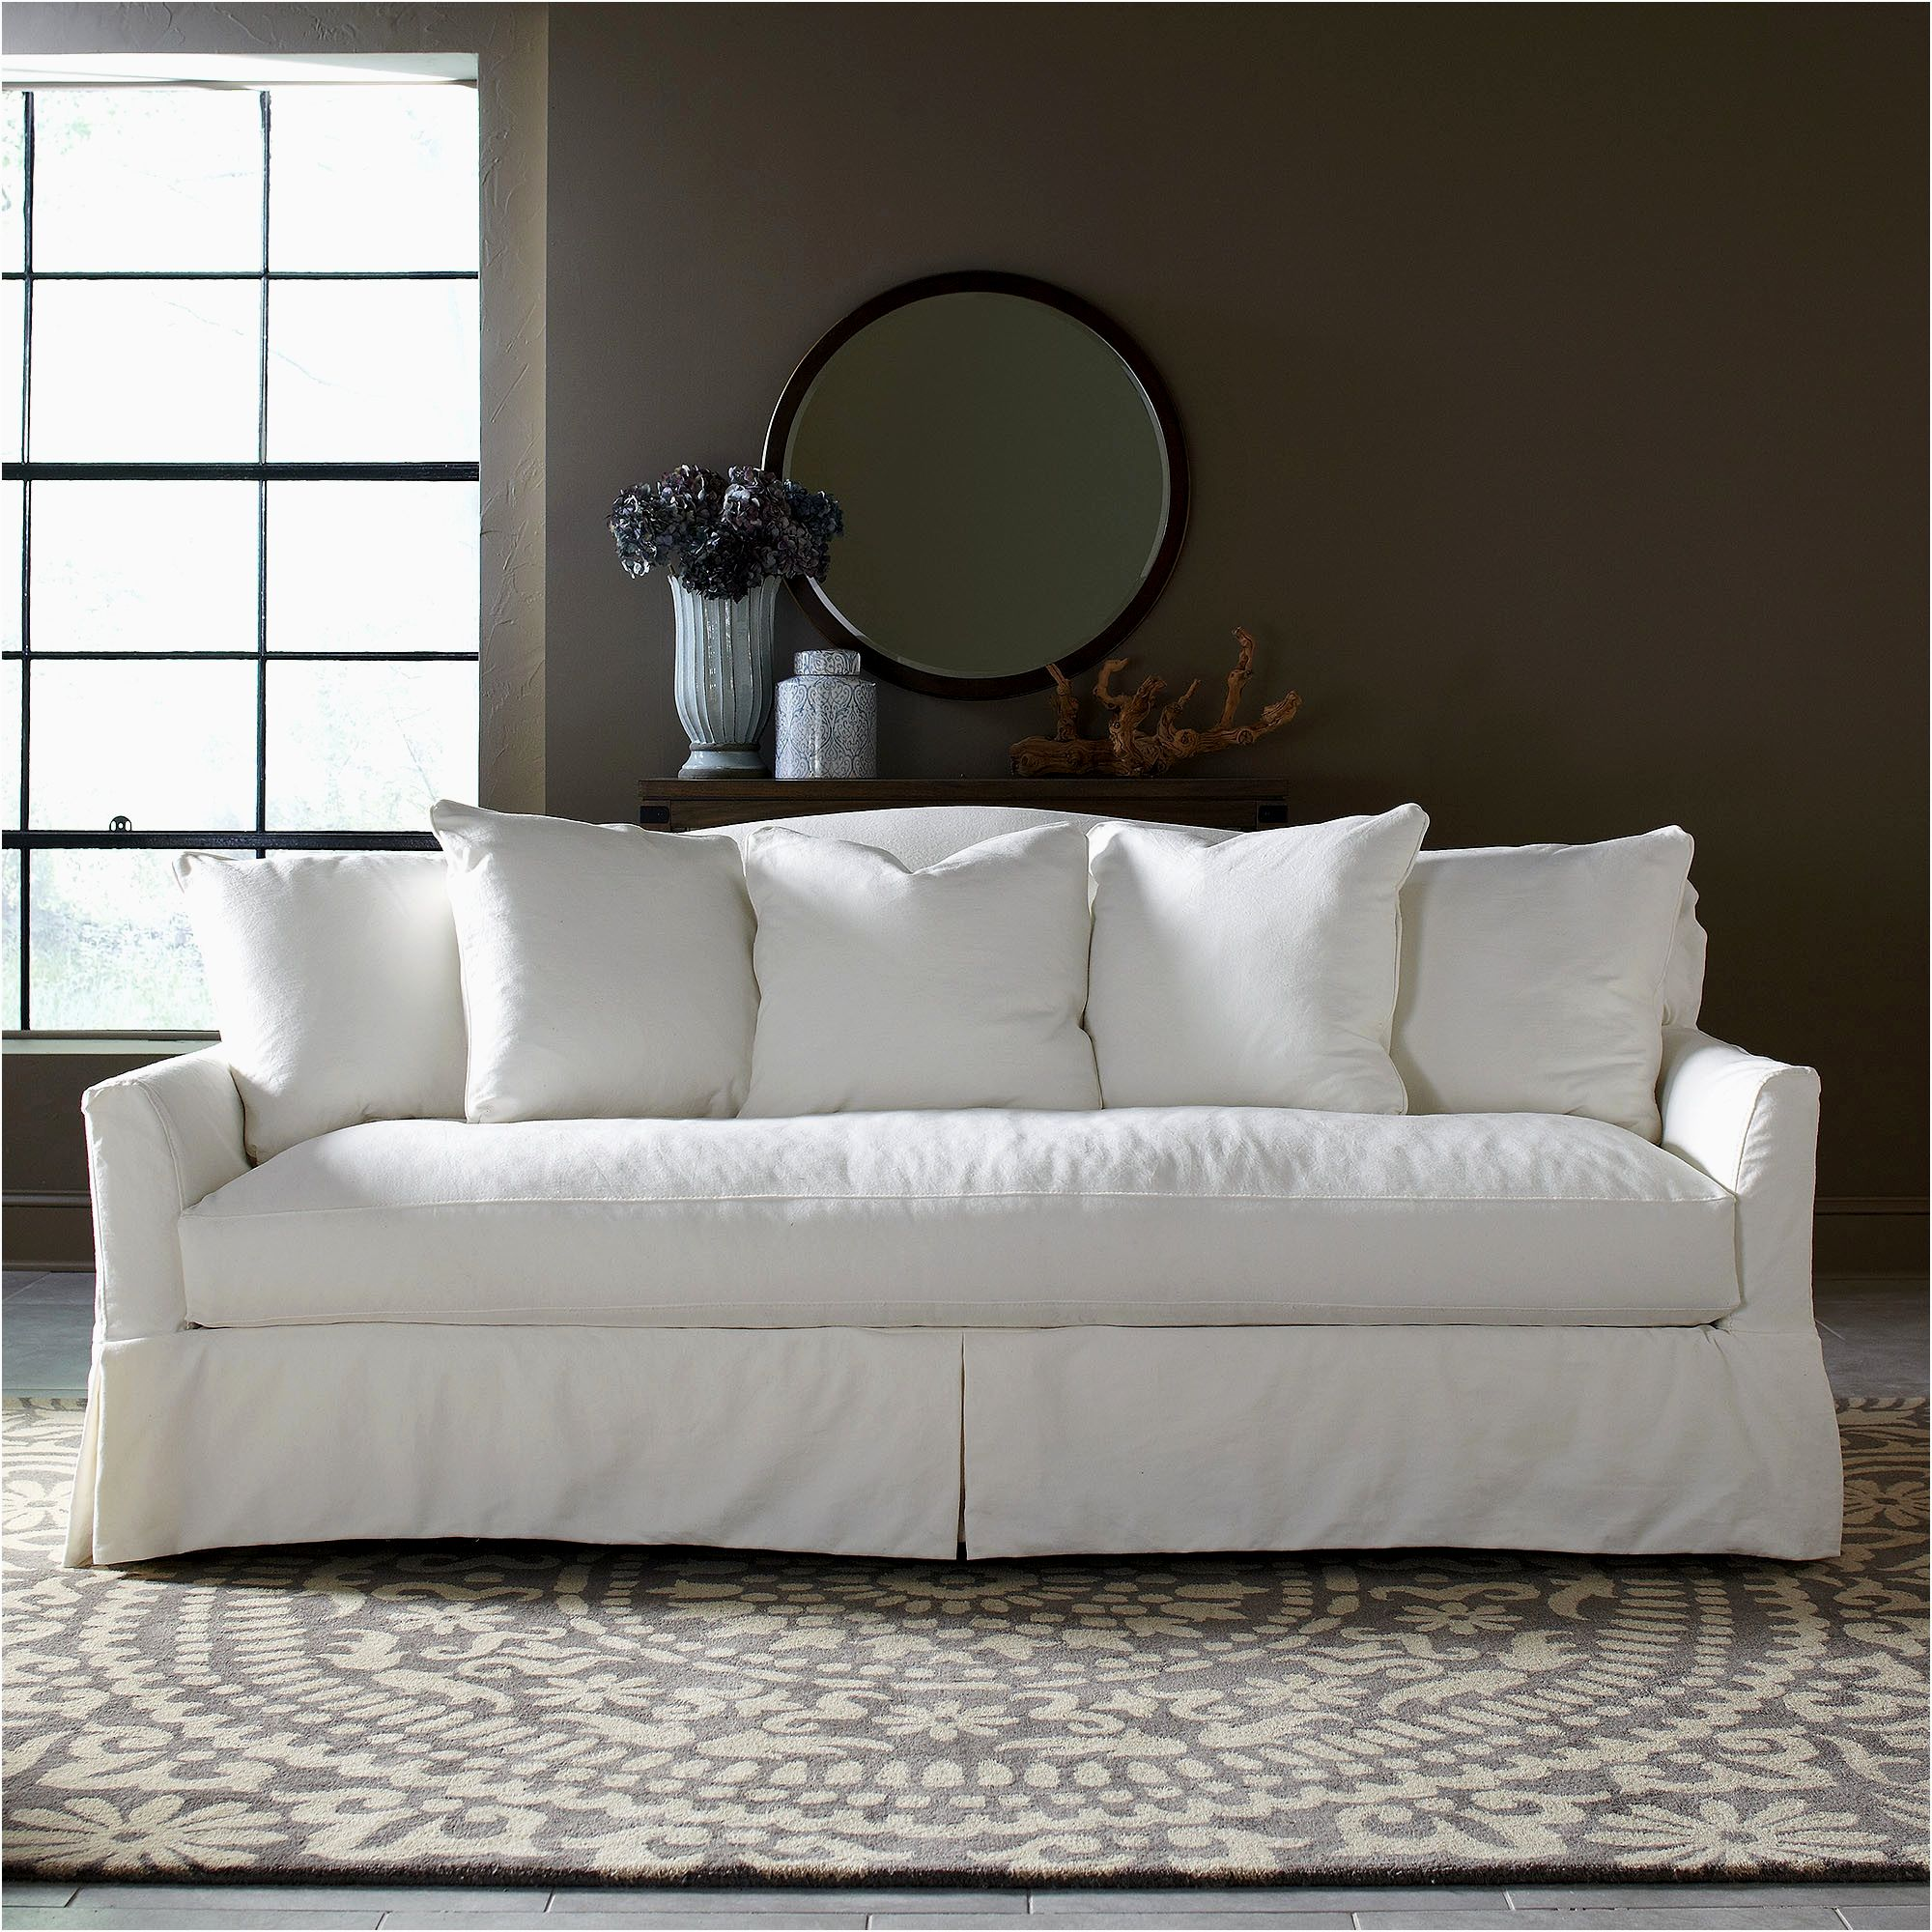 beautiful unique sectional sofas online-Best Unique Sectional sofas Photo